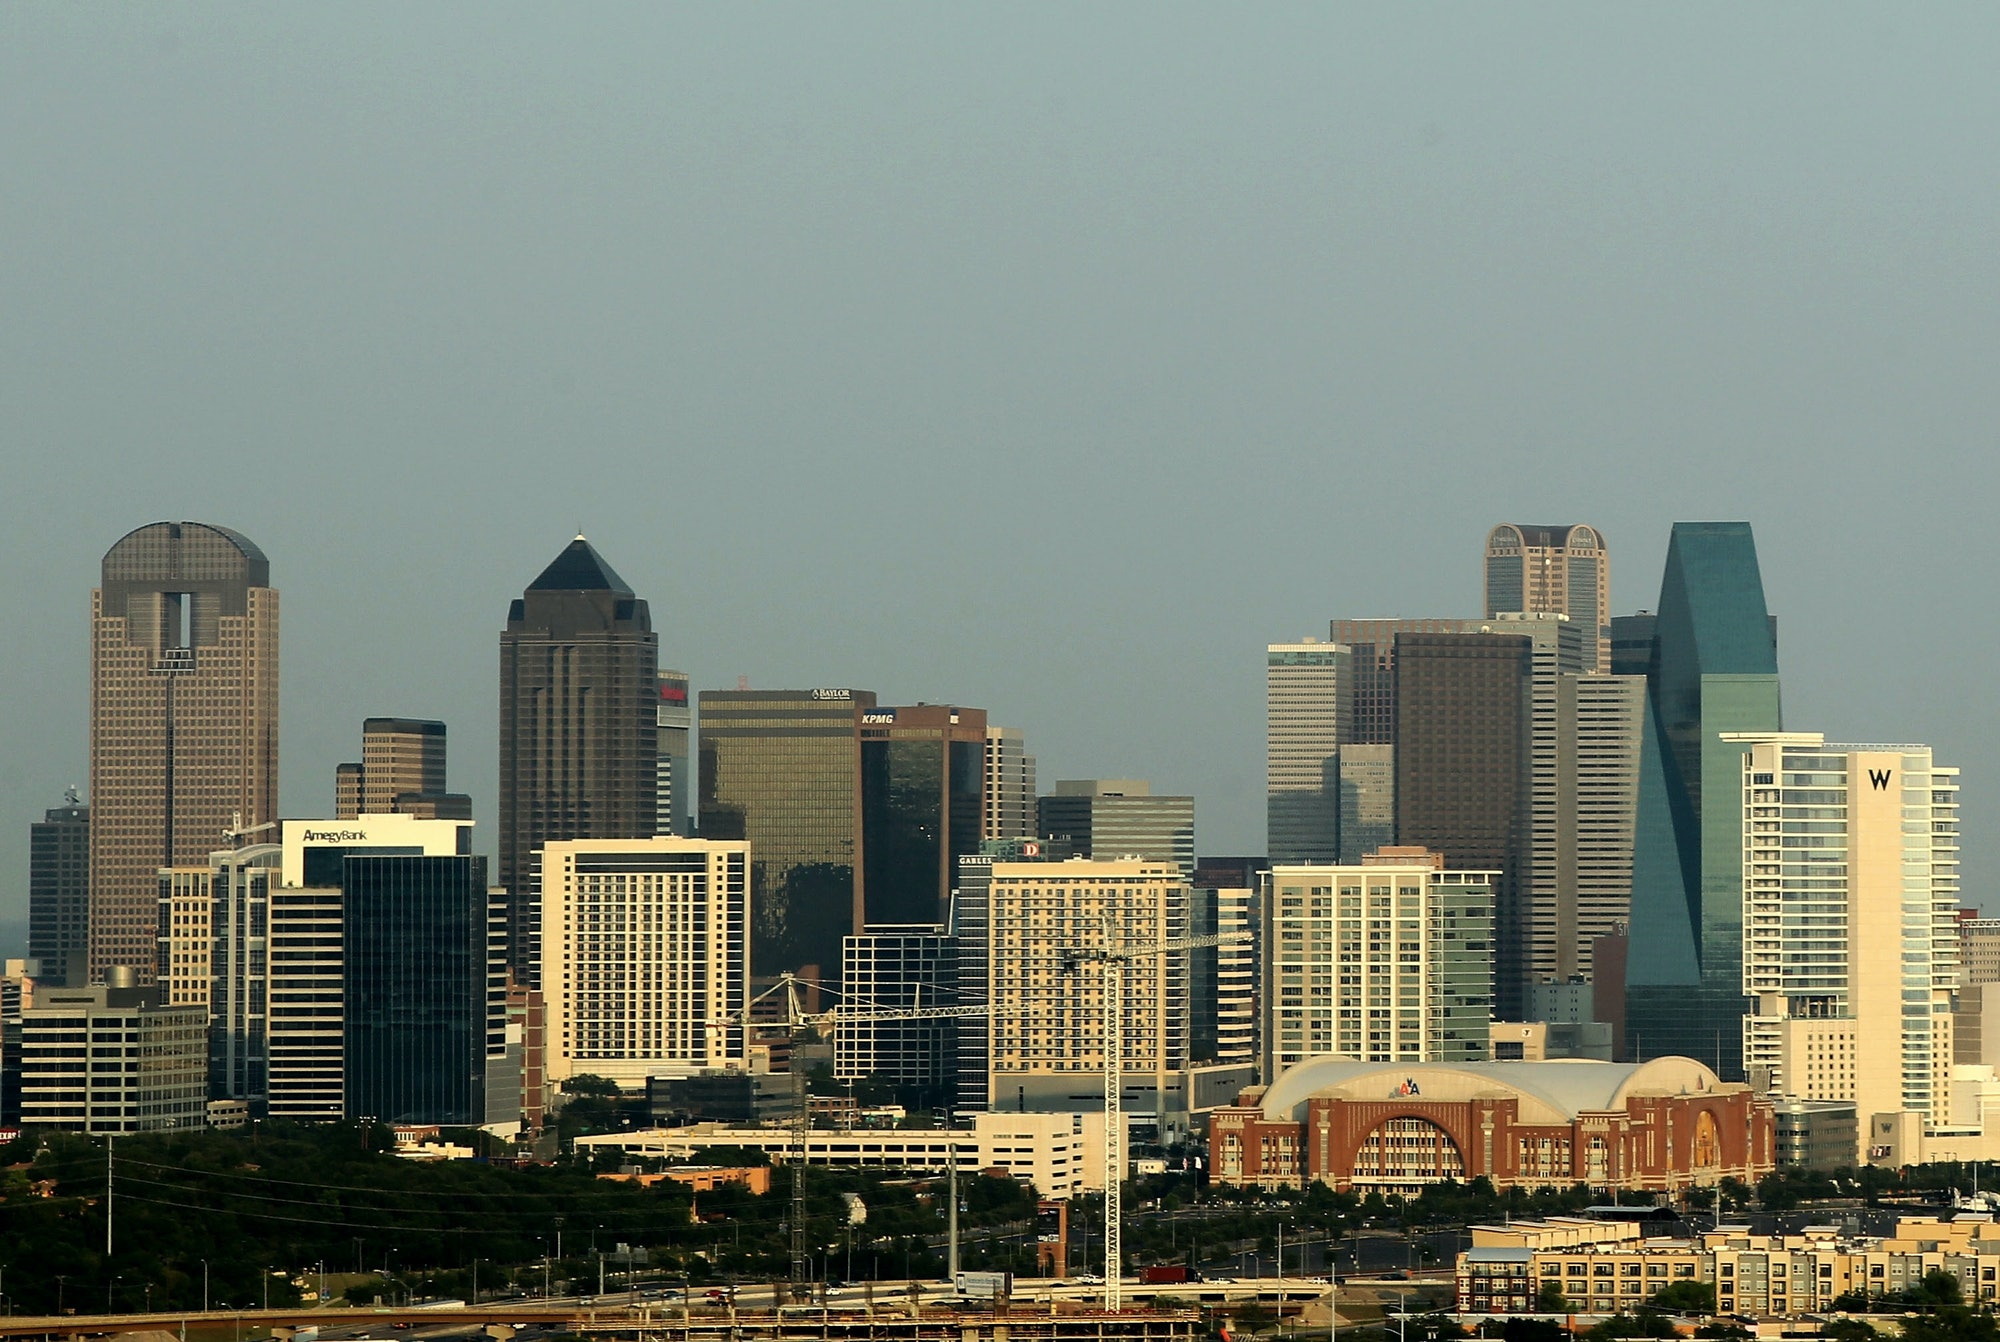 DALLAS, TX - JUNE 07: A general view of the skyline of downtown Dallas, Texas as the American Airlines Center can be seen before Game Four of the 2011 NBA Finals on June 7, 2011 in Dallas, Texas. NOTE TO USER: User expressly acknowledges and agrees that, by downloading and/or using this Photograph, user is consenting to the terms and conditions of the Getty Images License Agreement (Photo by Mike Ehrmann/Getty Images)